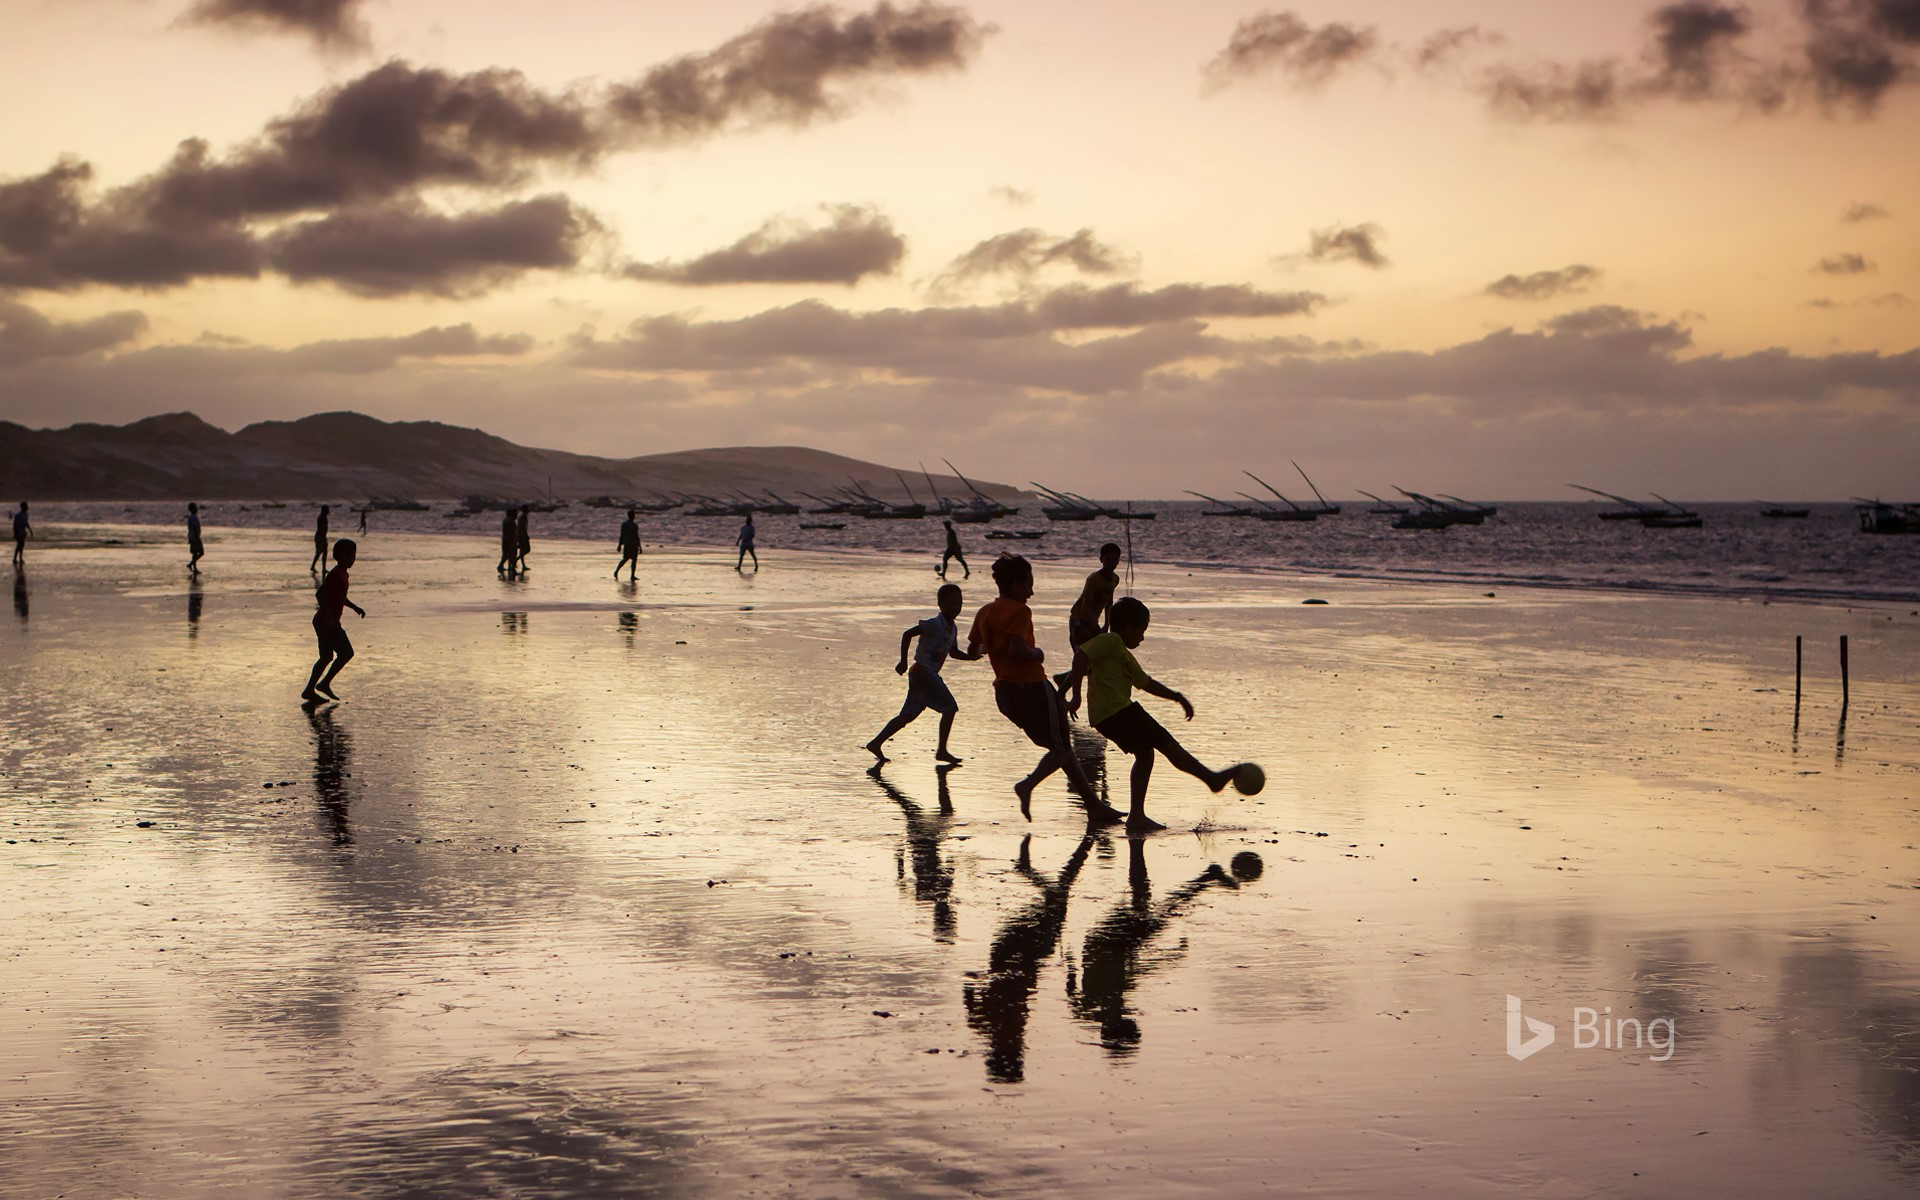 Young boys playing soccer on a beach in Ceará state, Brazil